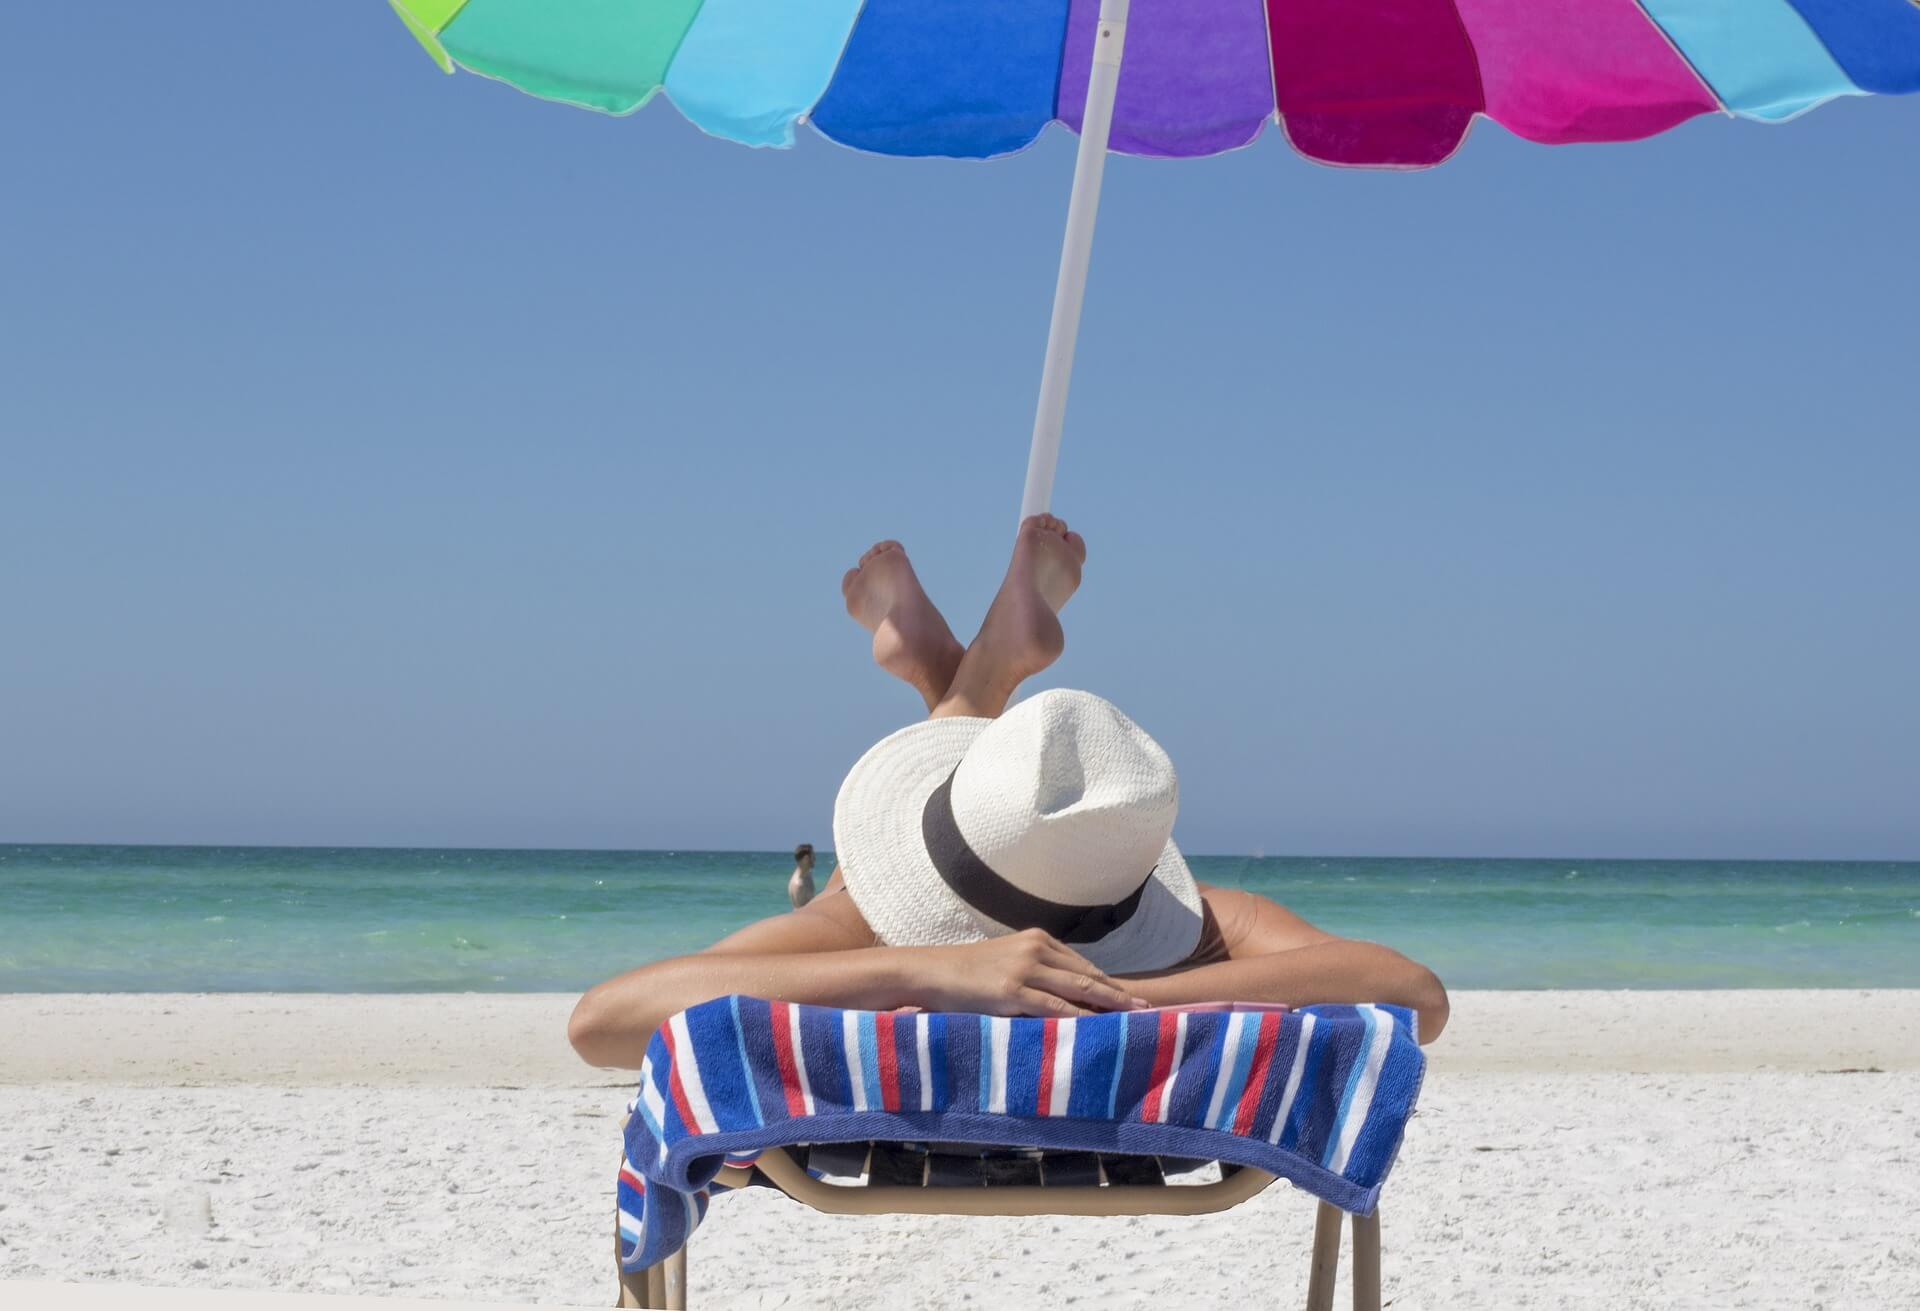 Sunscreen, shade and protective clothing are the best defenses against harmful UV rays.